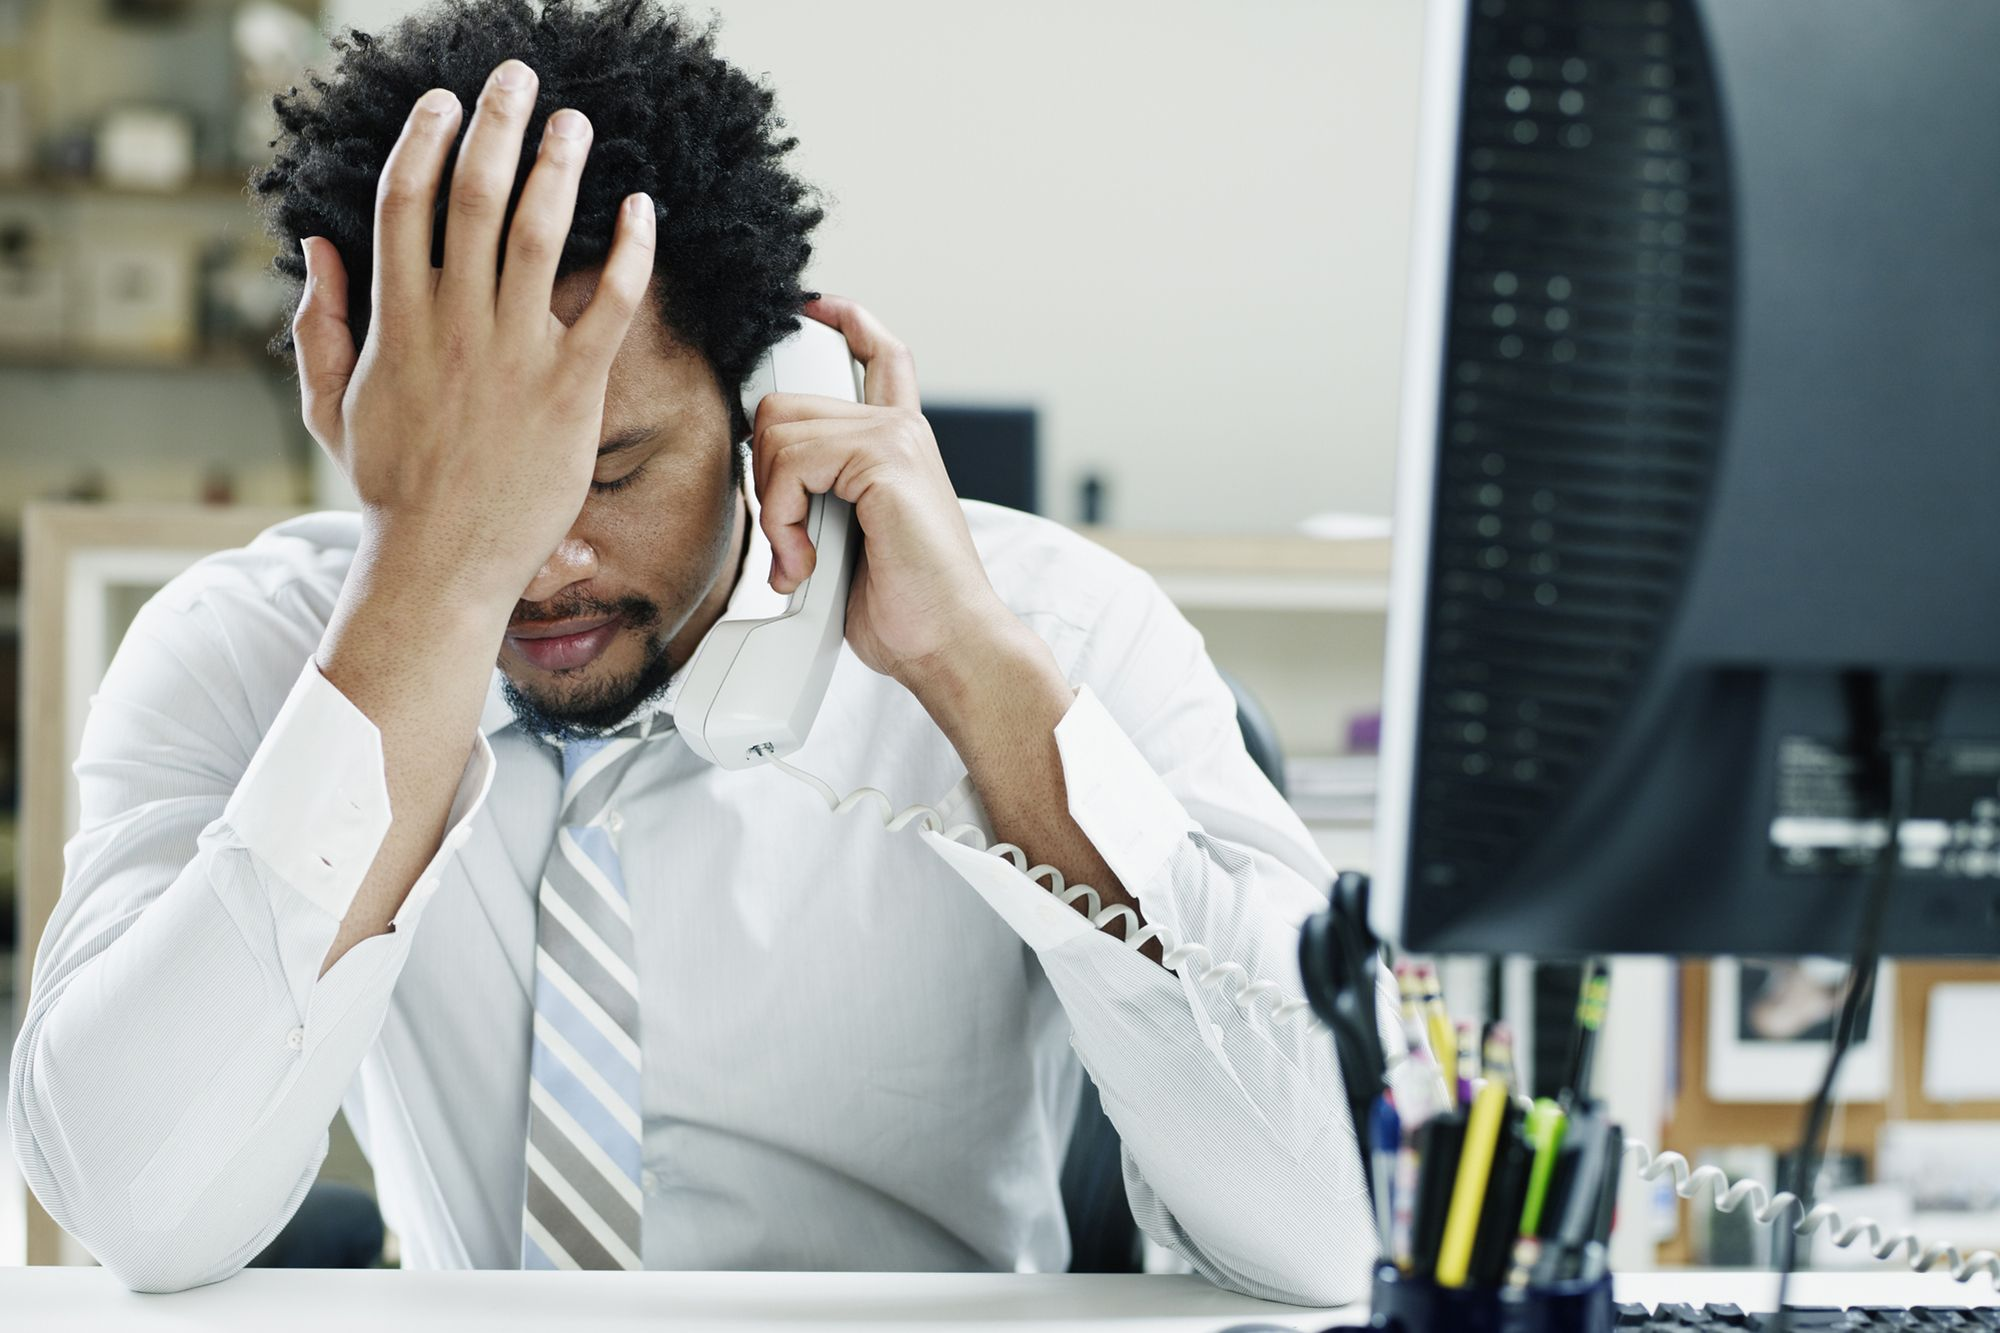 20181129220152 GettyImages 100377996 - The 3 Dumbest Business Mistakes New Entrepreneurs Make Most Often